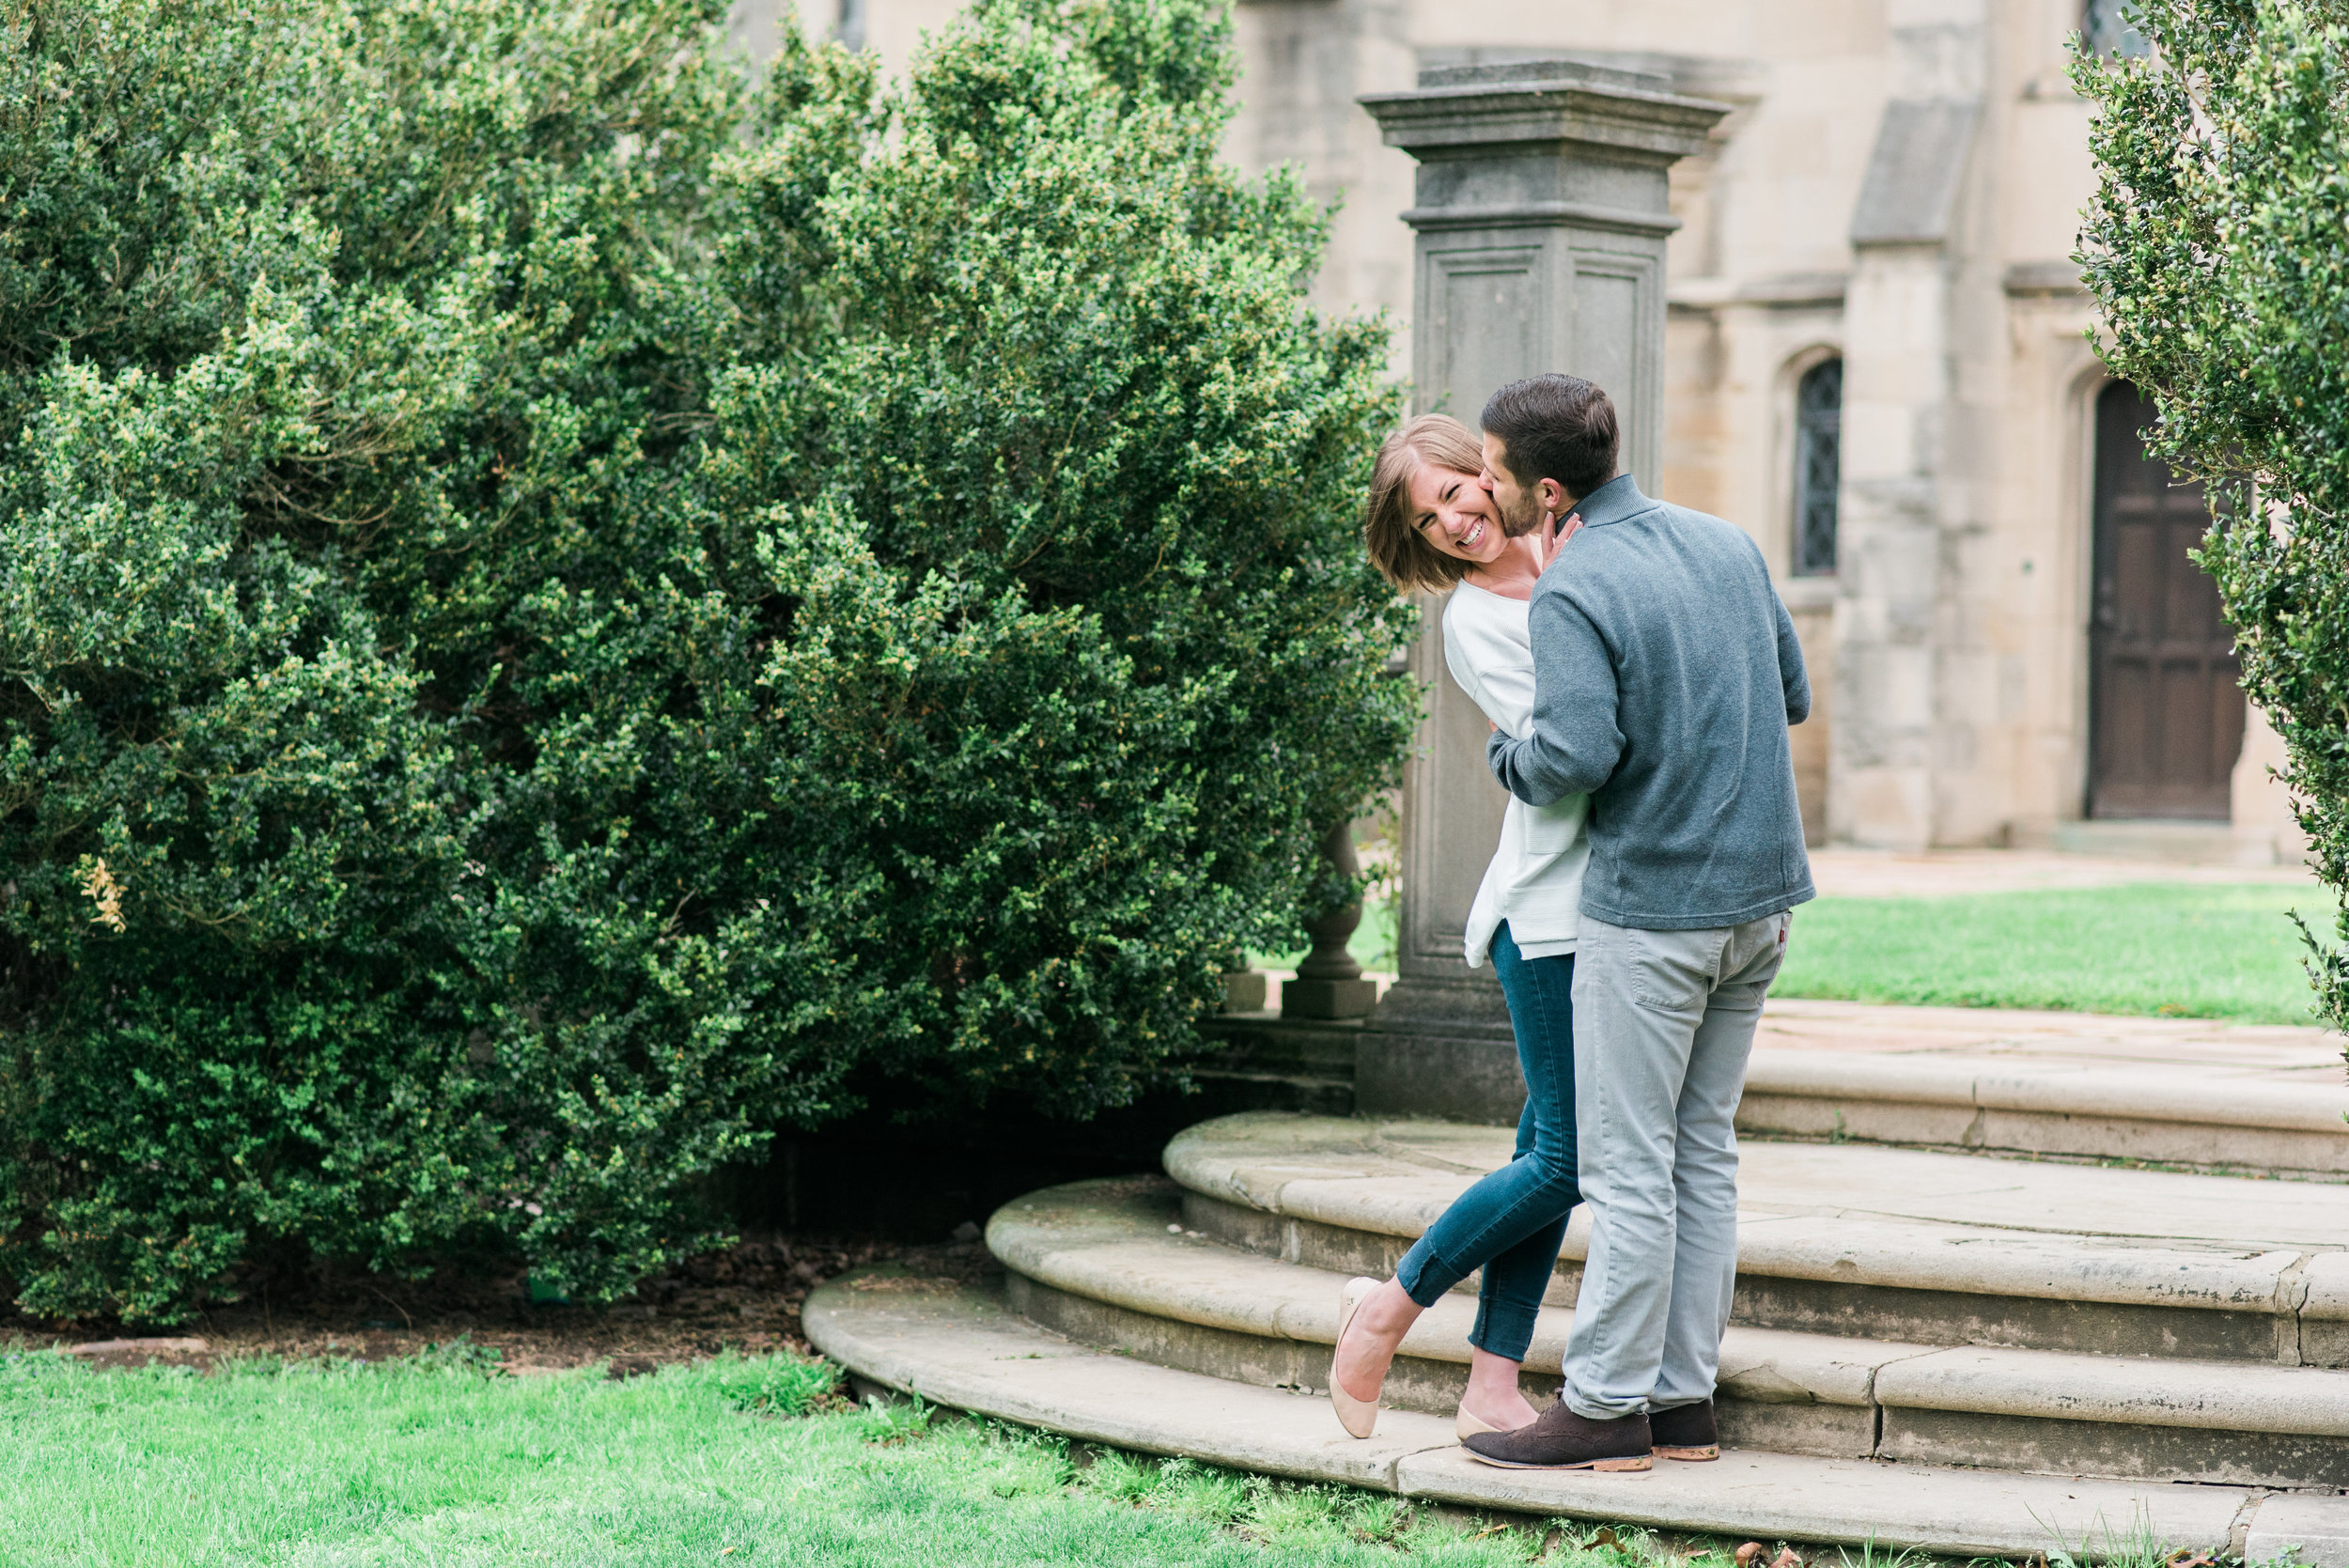 Pittsburgh Wedding Photography | Deena & Adam Engagement Session 6